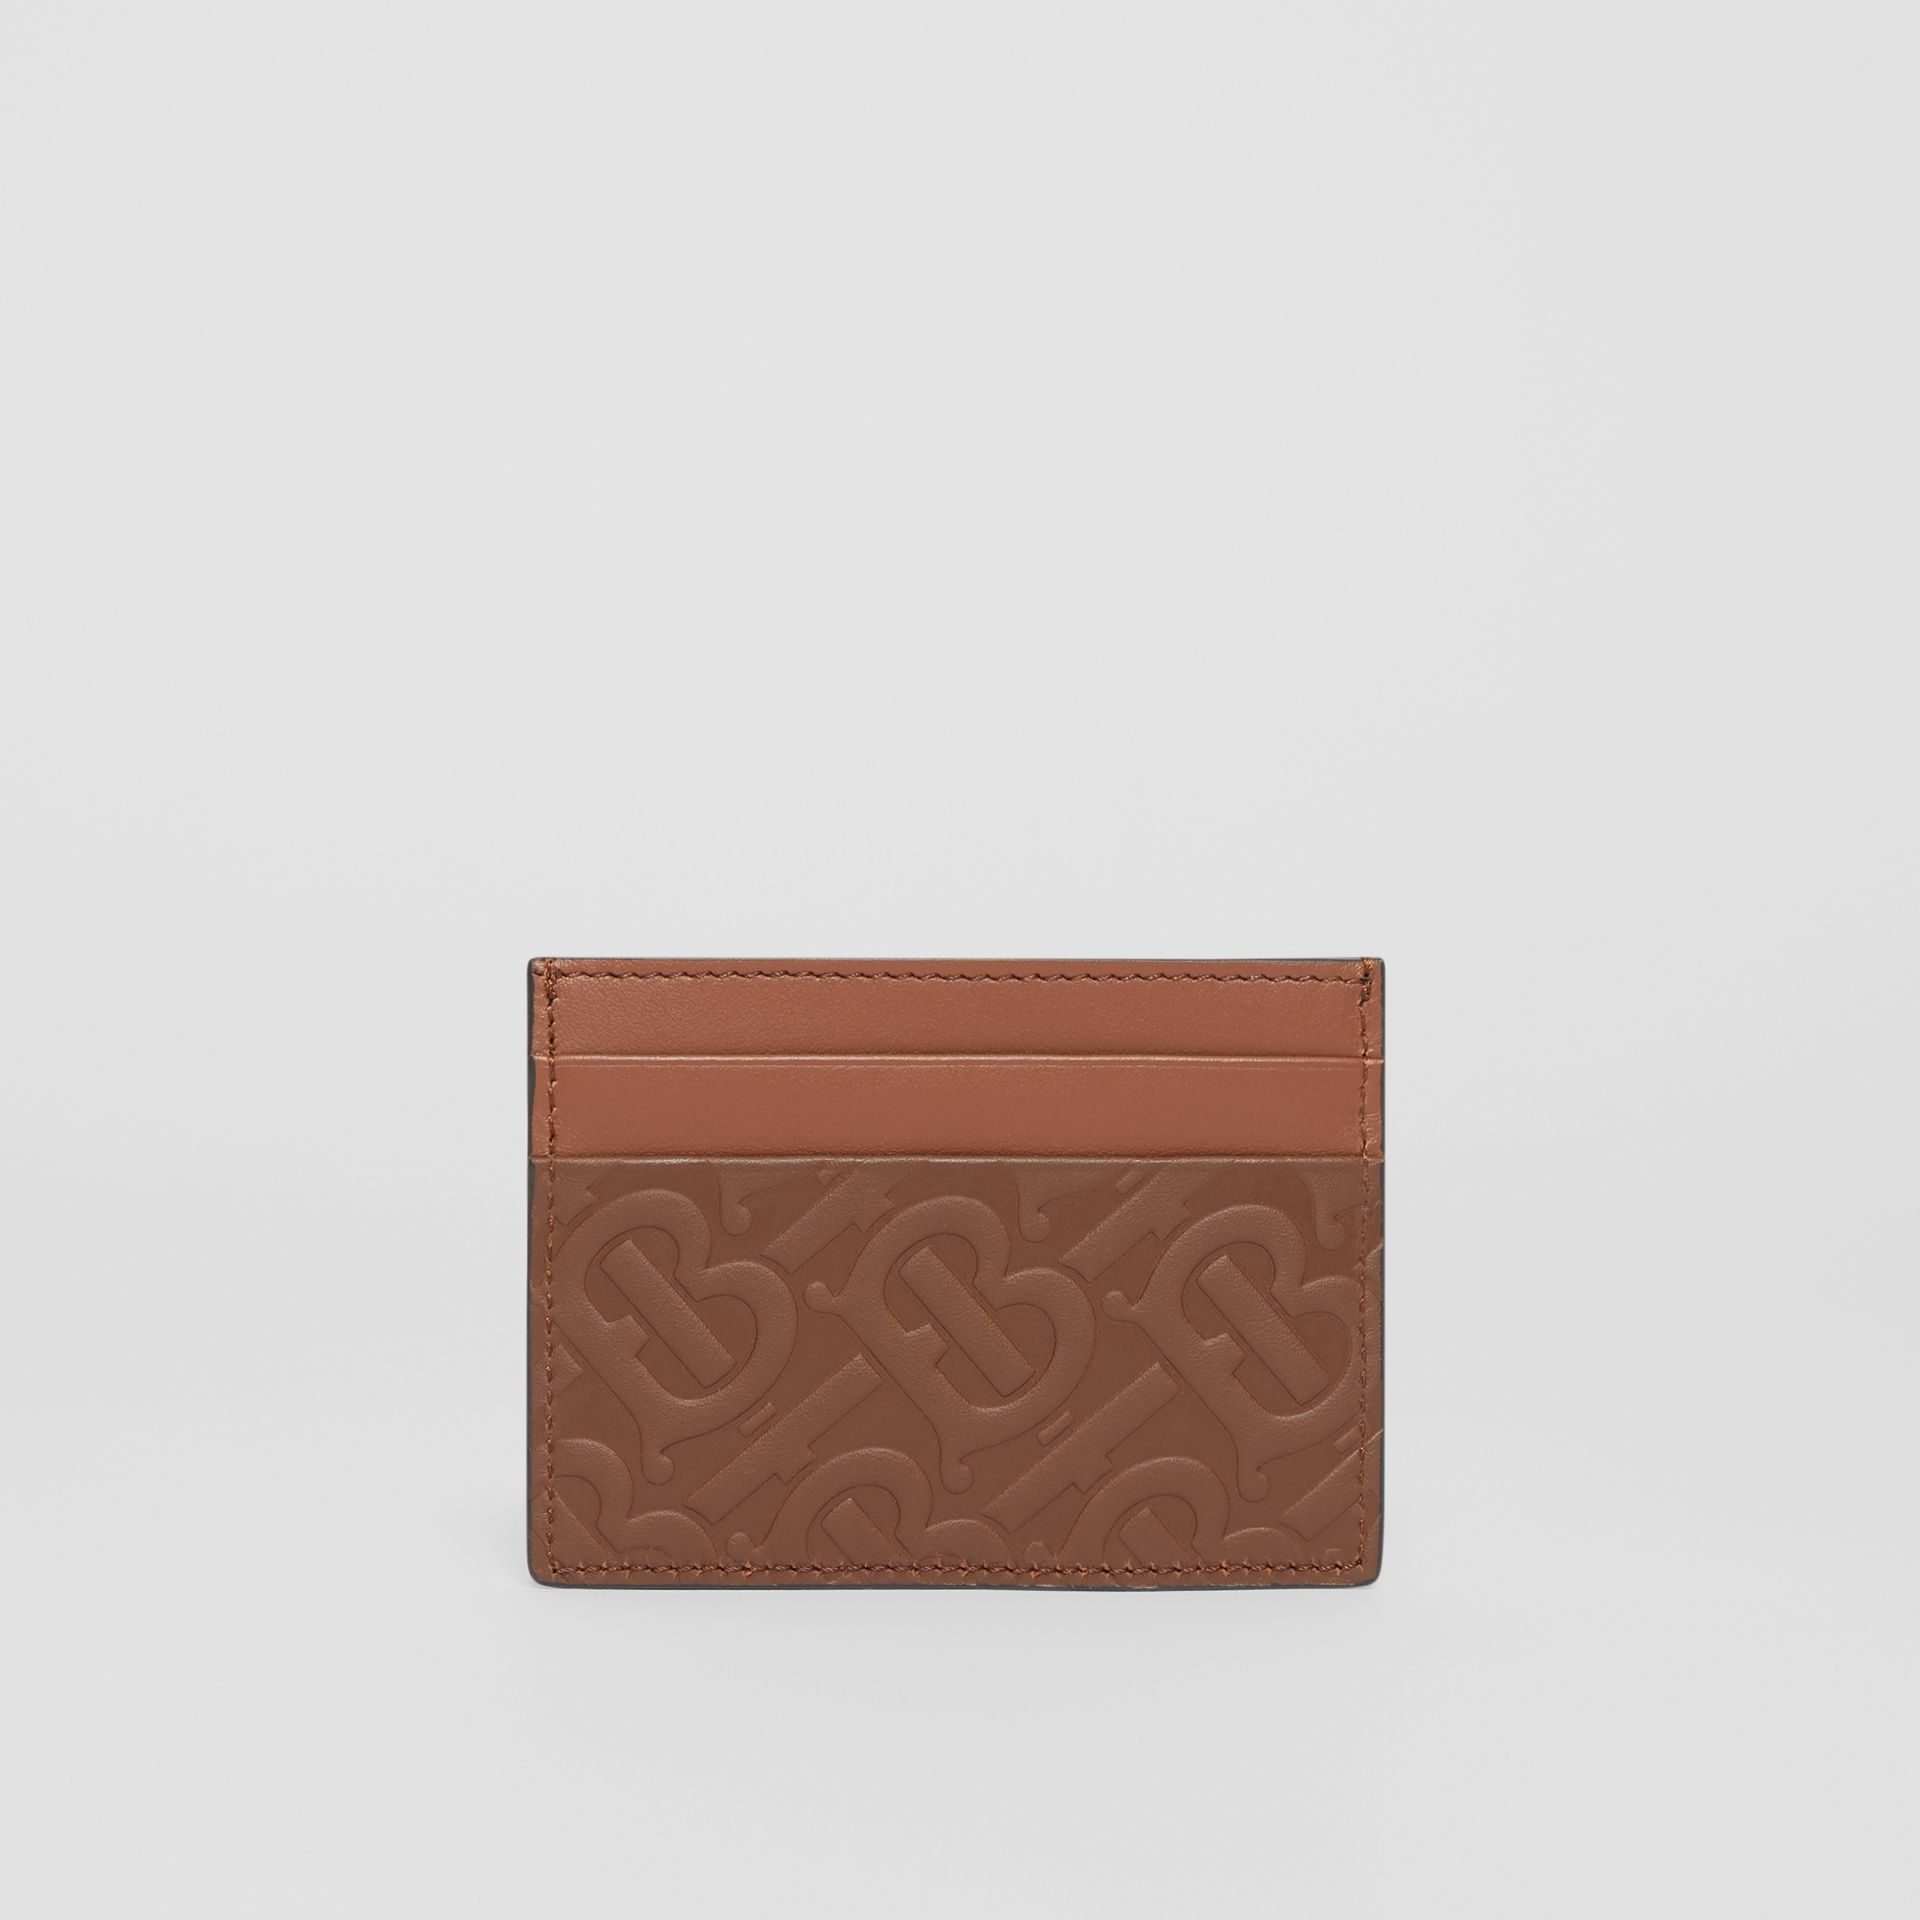 Monogram Leather Card Case in Dark Tan | Burberry - gallery image 4